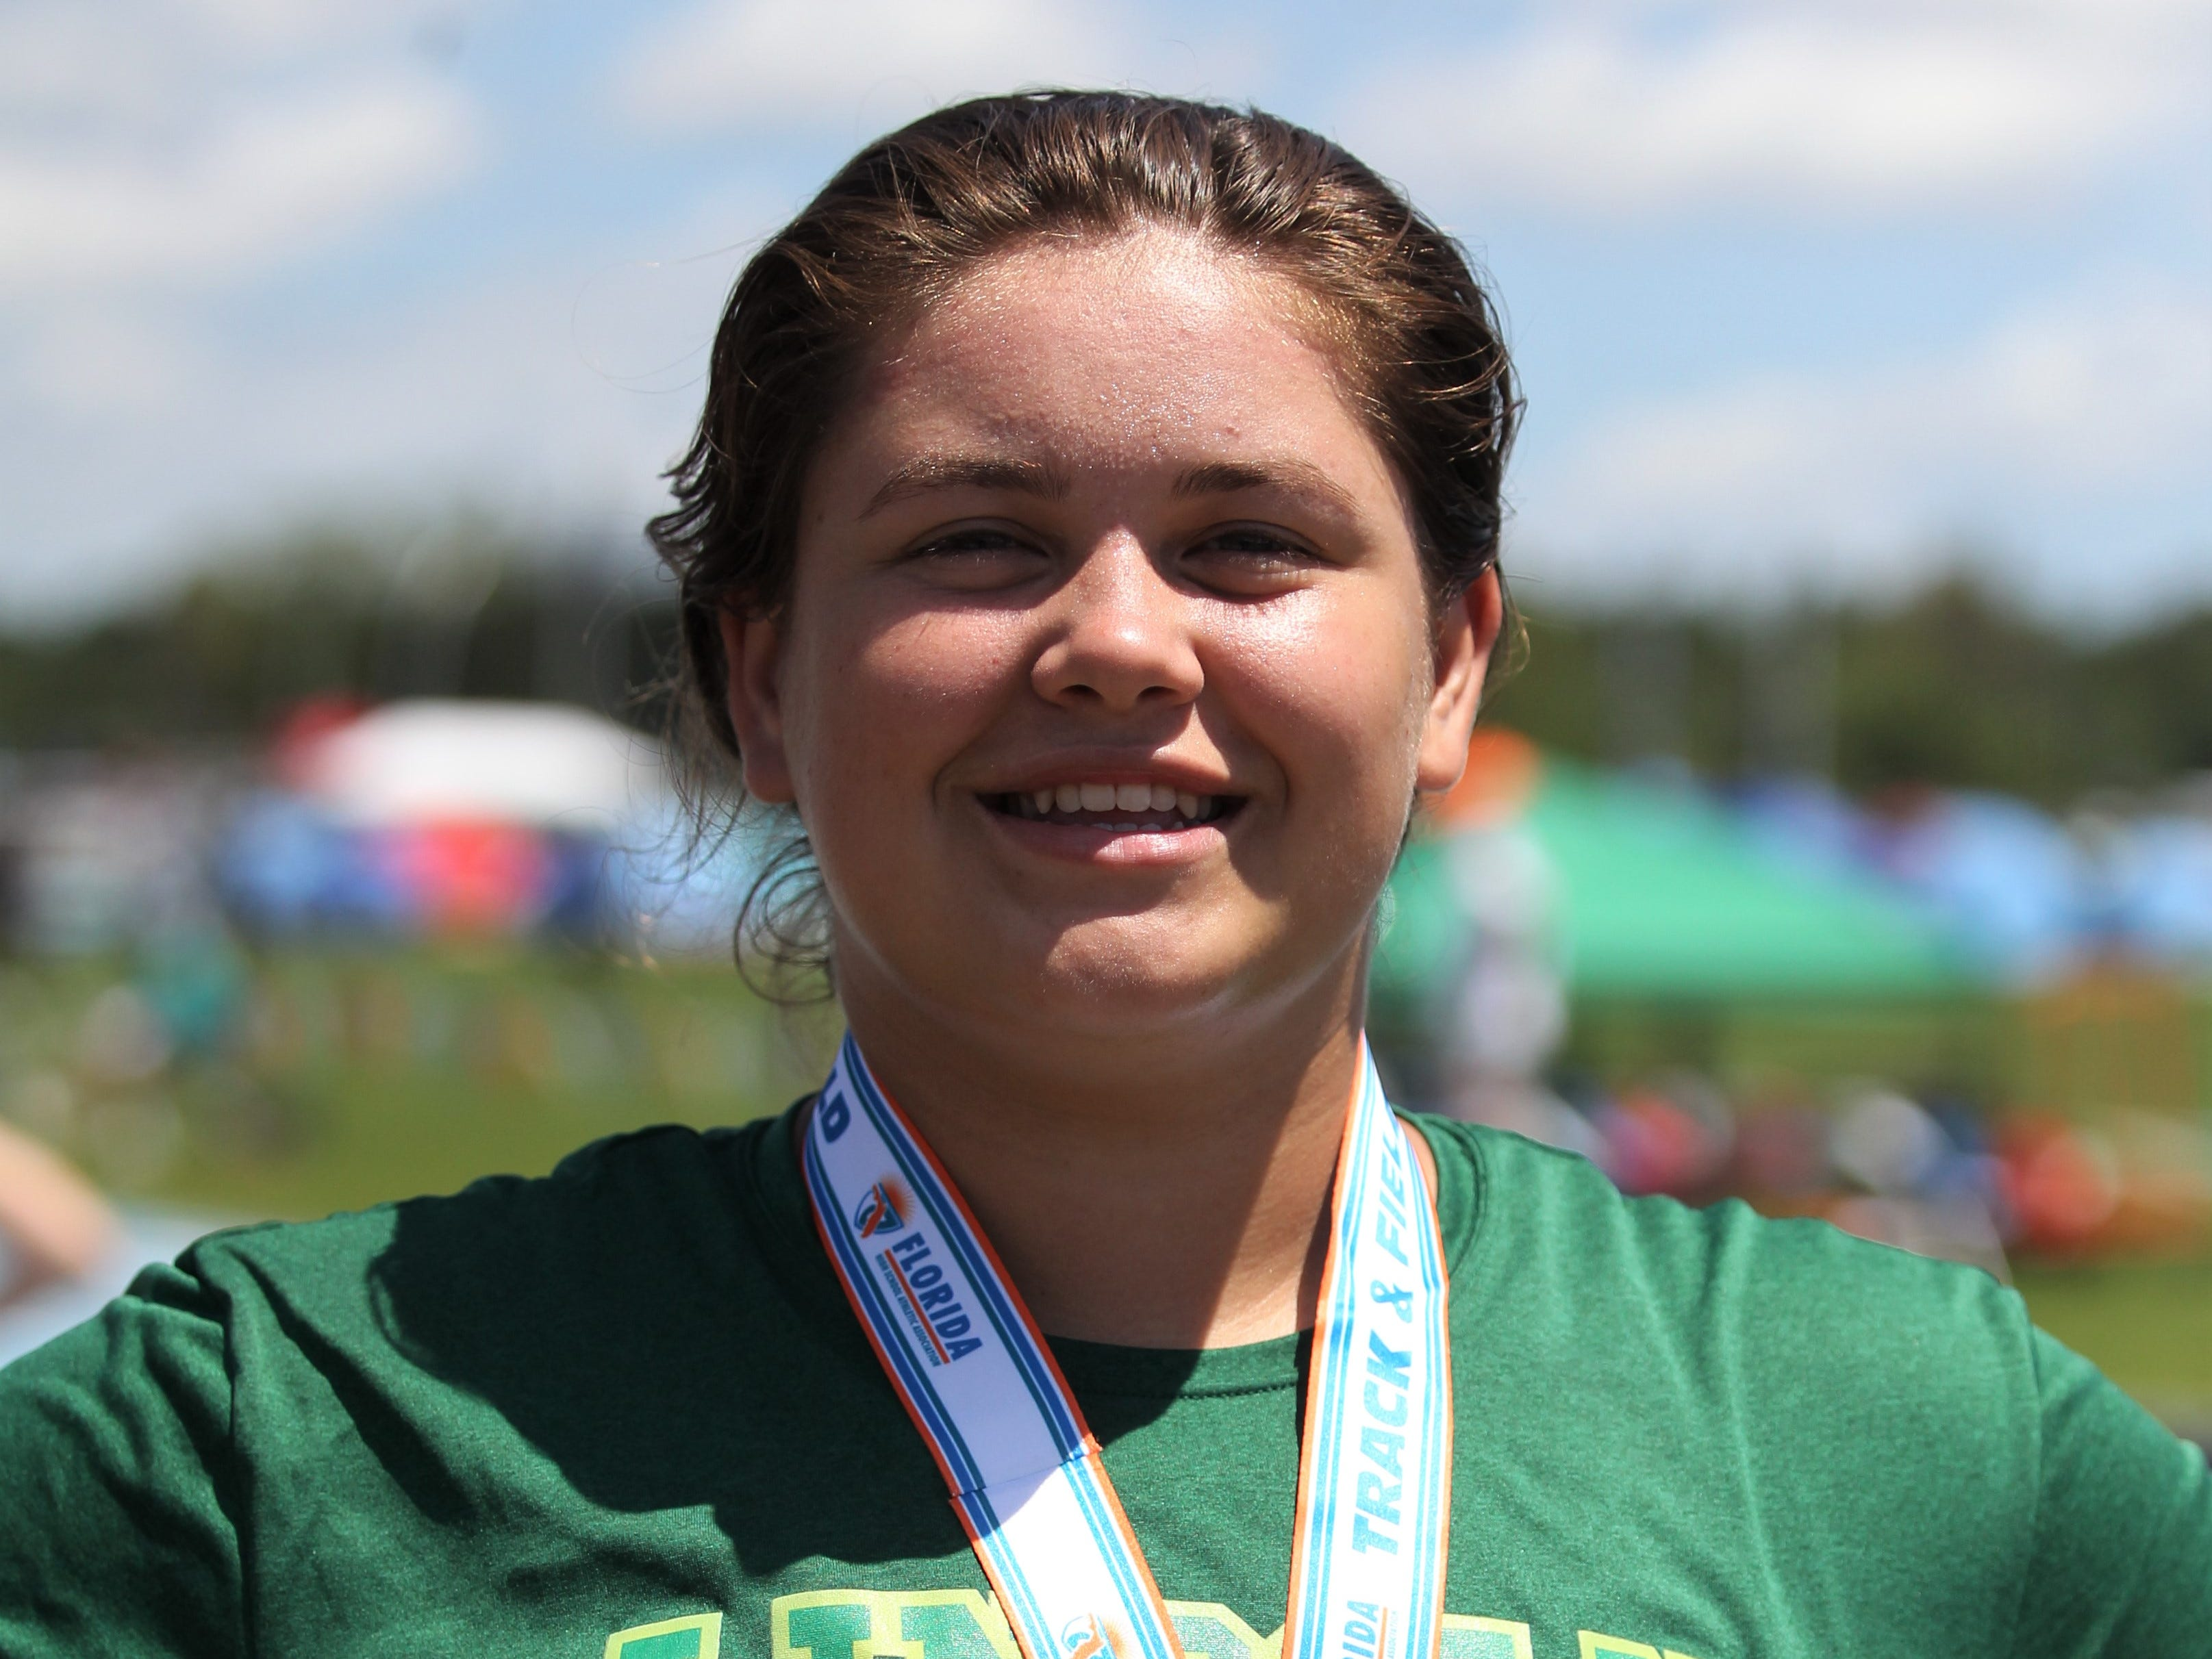 Lincoln junior Macy Kelley took seventh in Class 3A shot put during the FHSAA Track and Field State Championships at UNF's Hodges Stadium in Jacksonville on May 4, 2019.